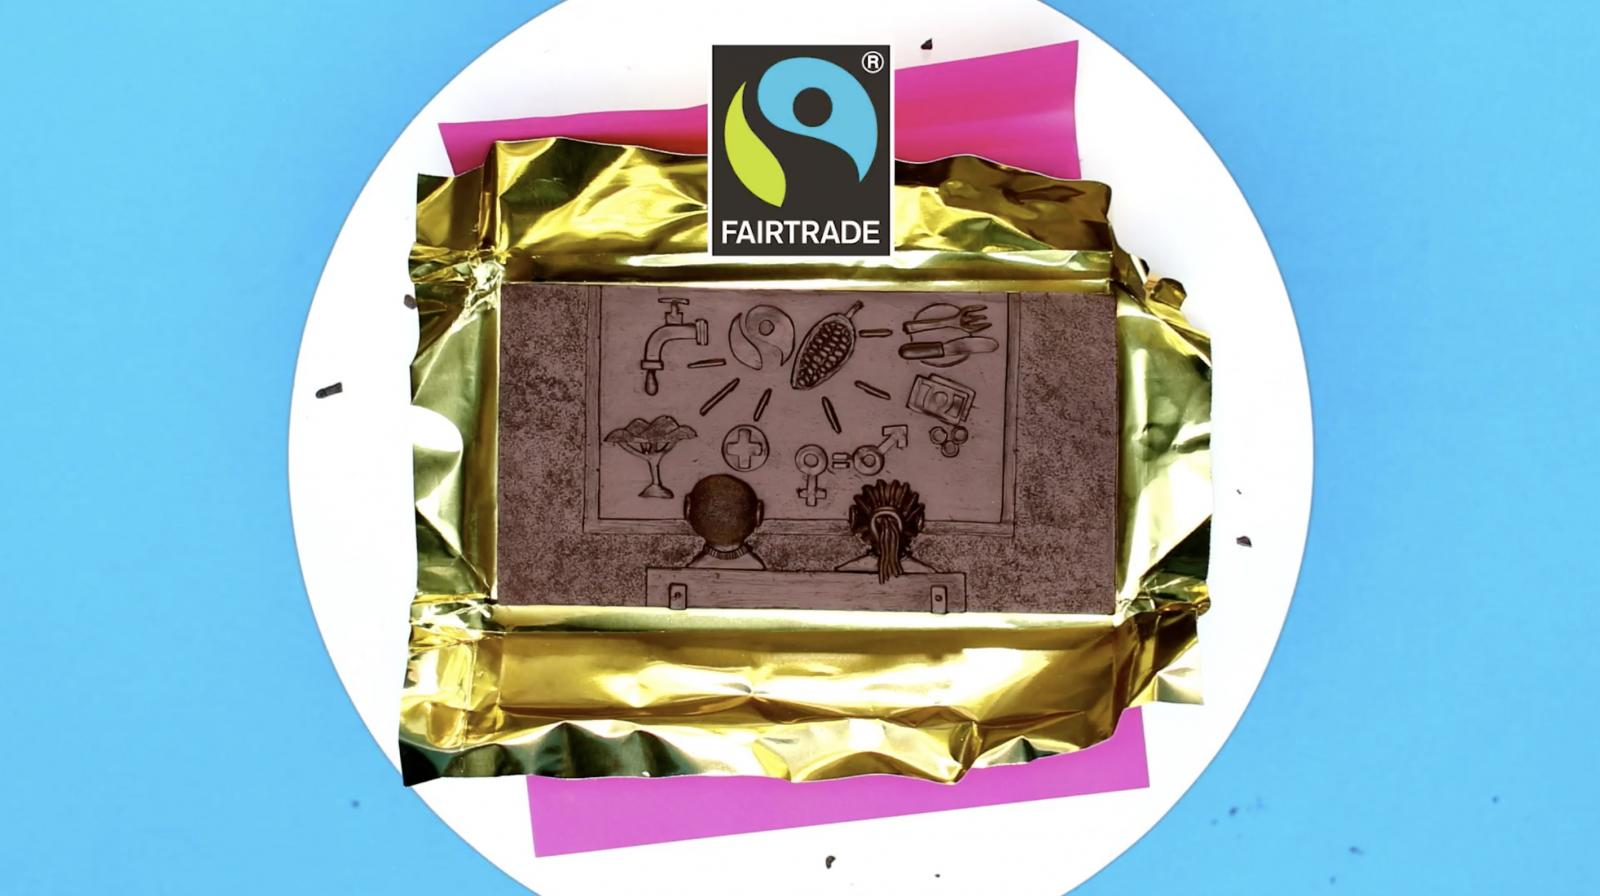 Image from Fairtrade Foundation